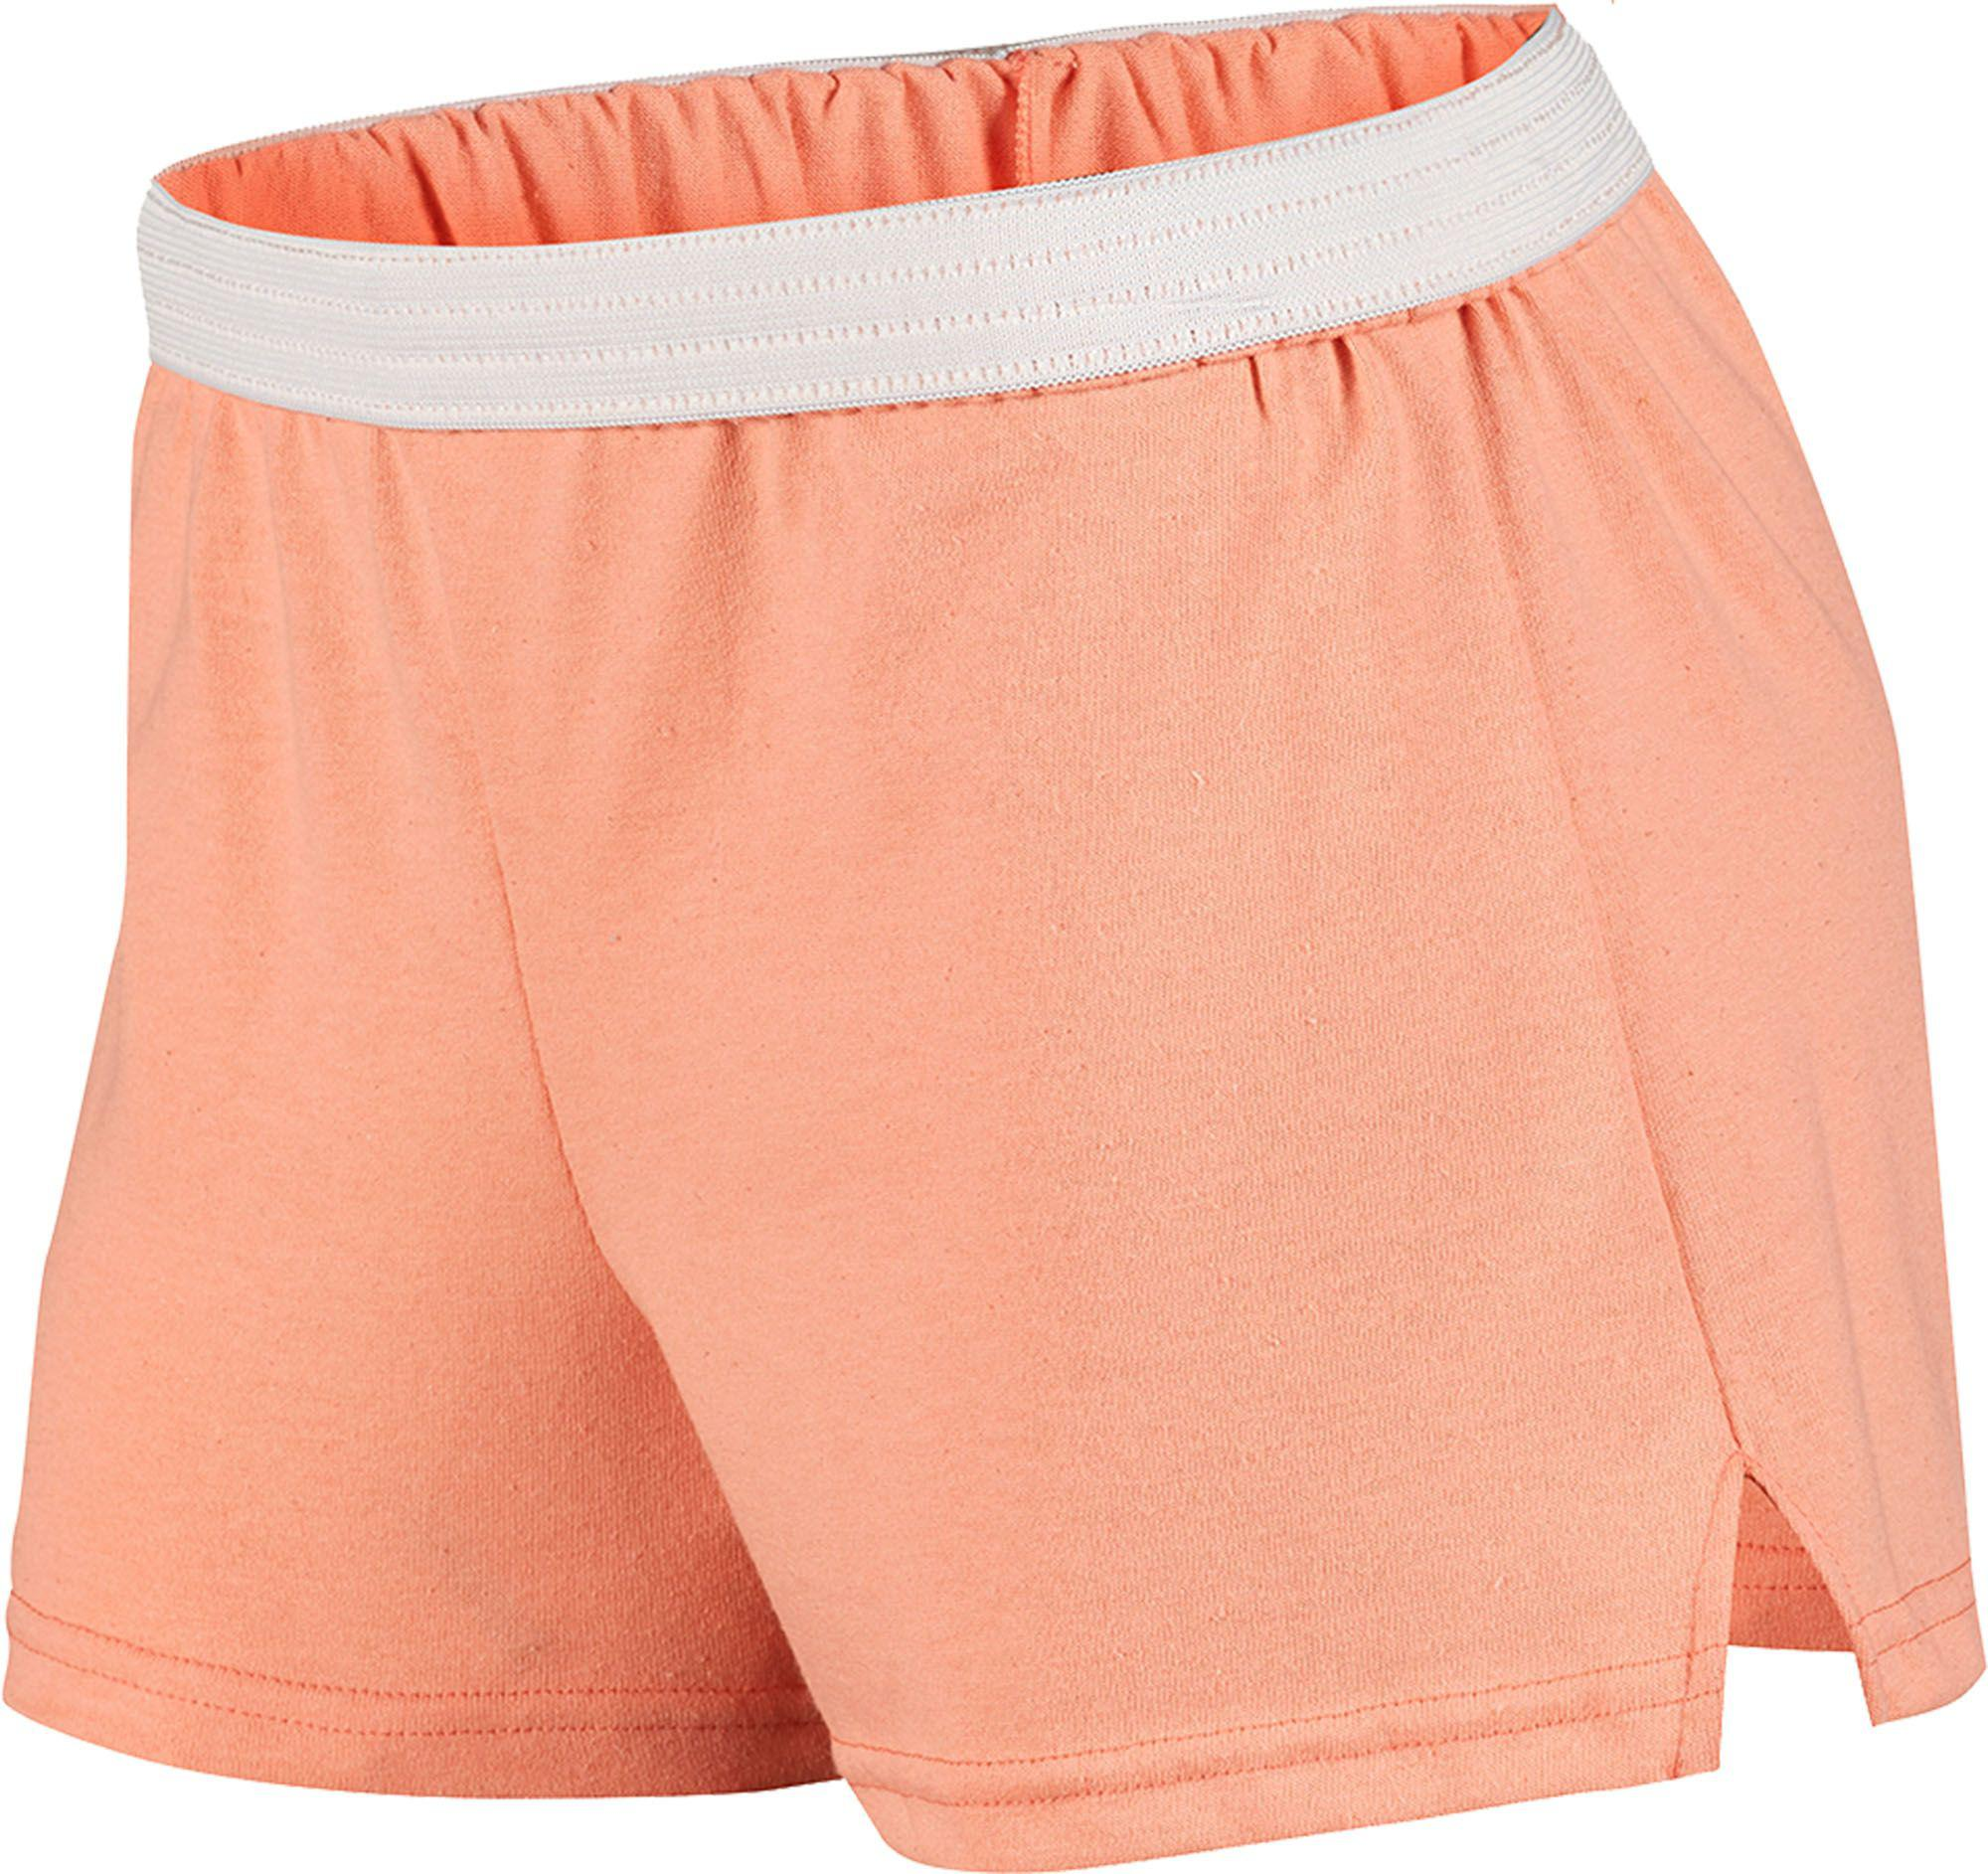 0b4a12a8e67 Soffe - Multicolor Juniors  Cheer Shorts - Lyst